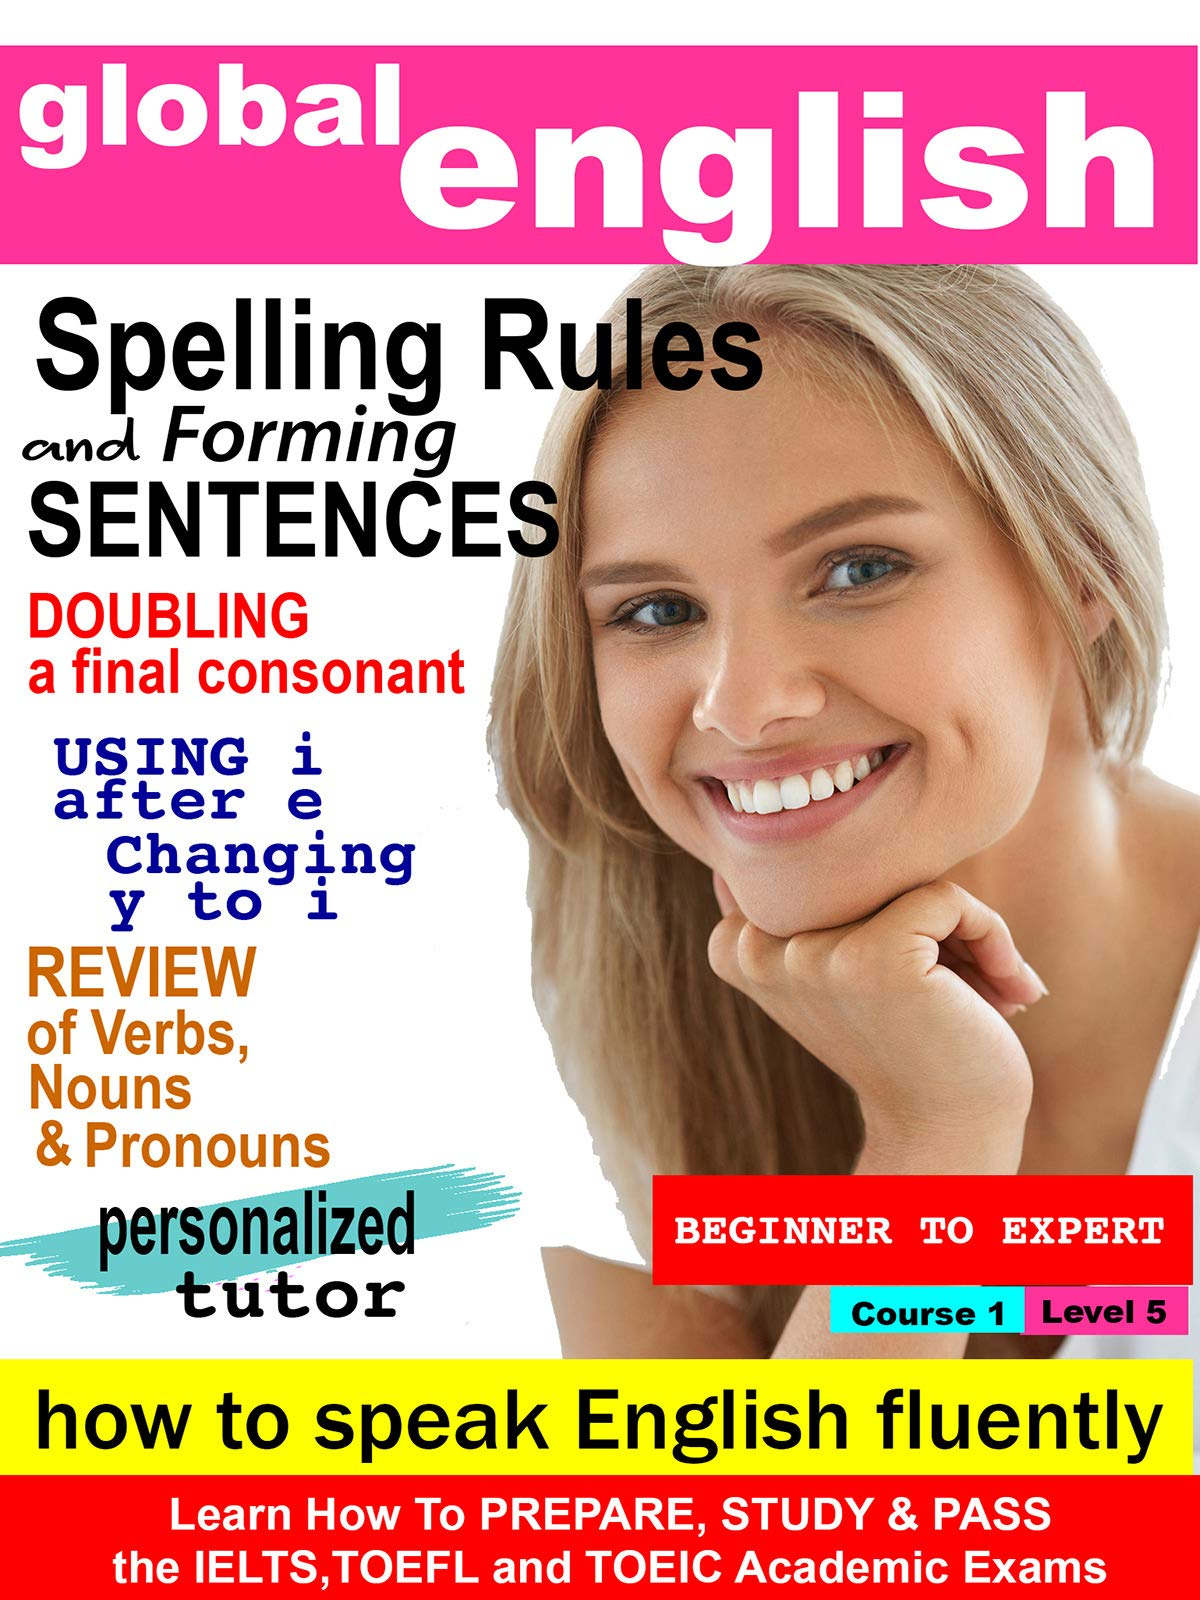 Global English - Learn how to Speak English Fluently - Spelling Rules & Forming Sentences on Amazon Prime Video UK